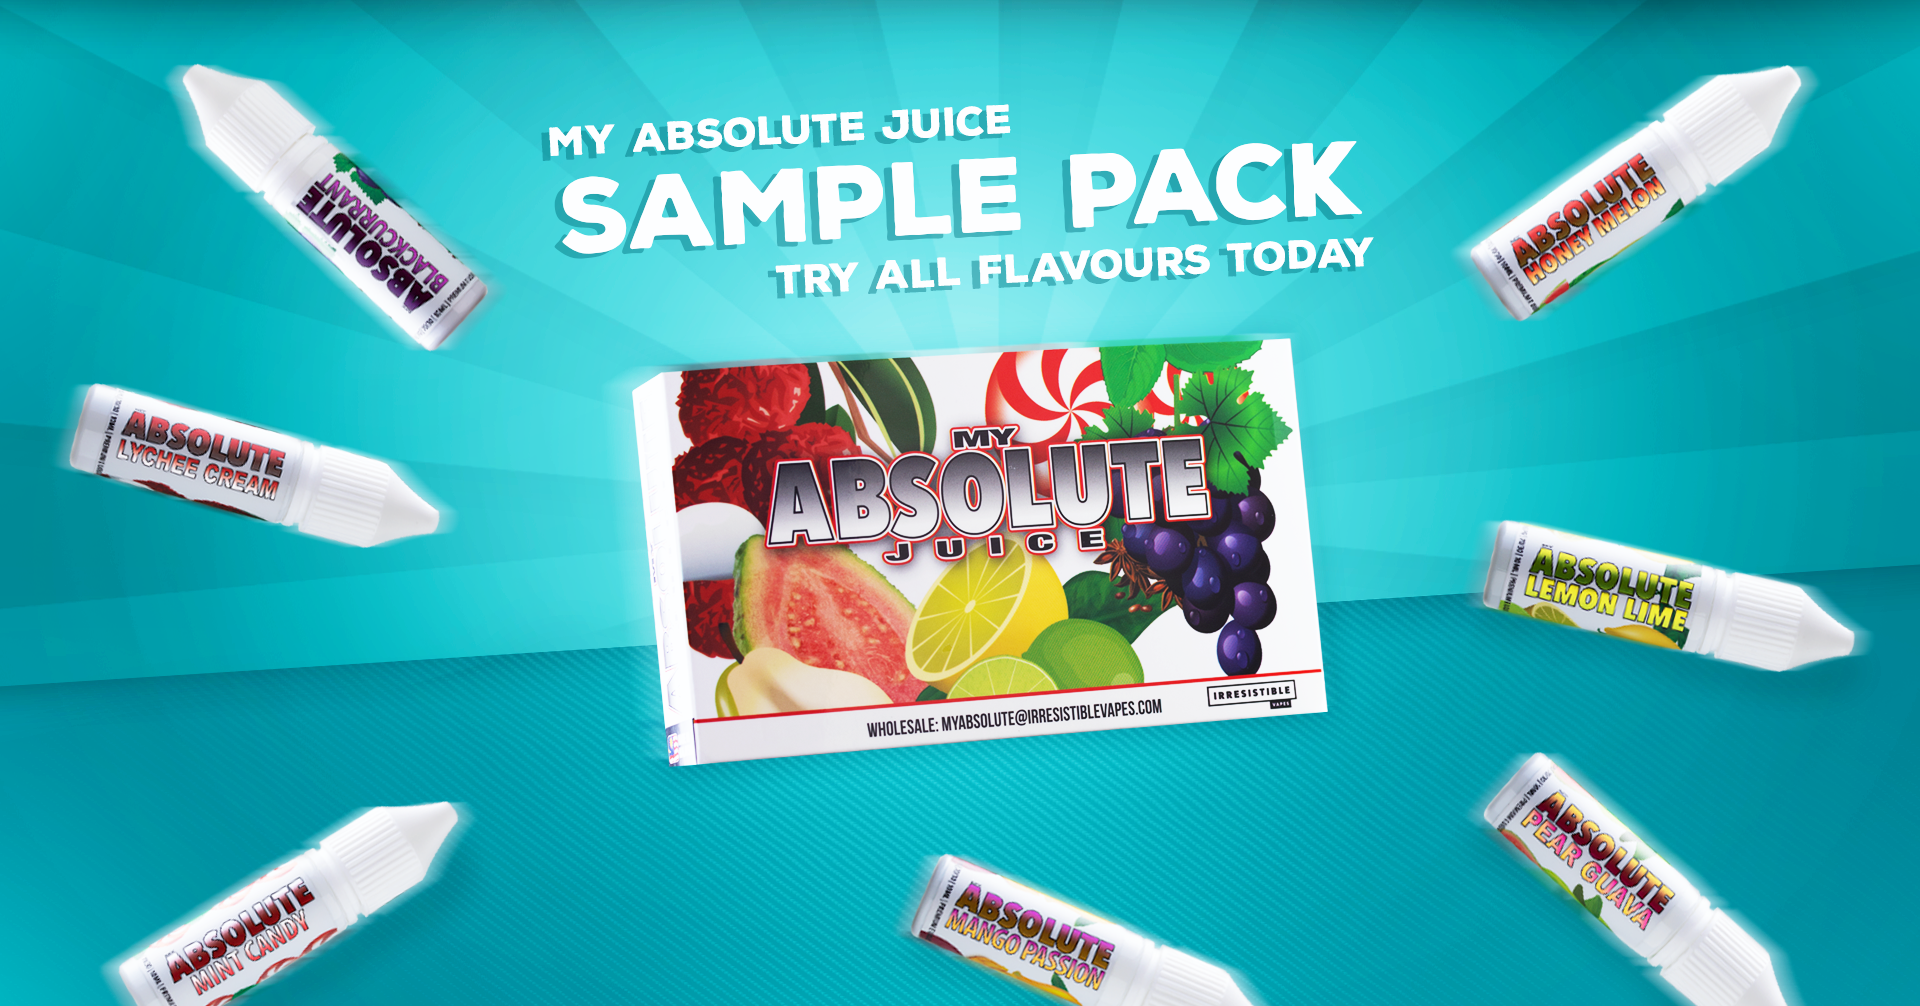 My Absolute Juice Sample Pack featured image